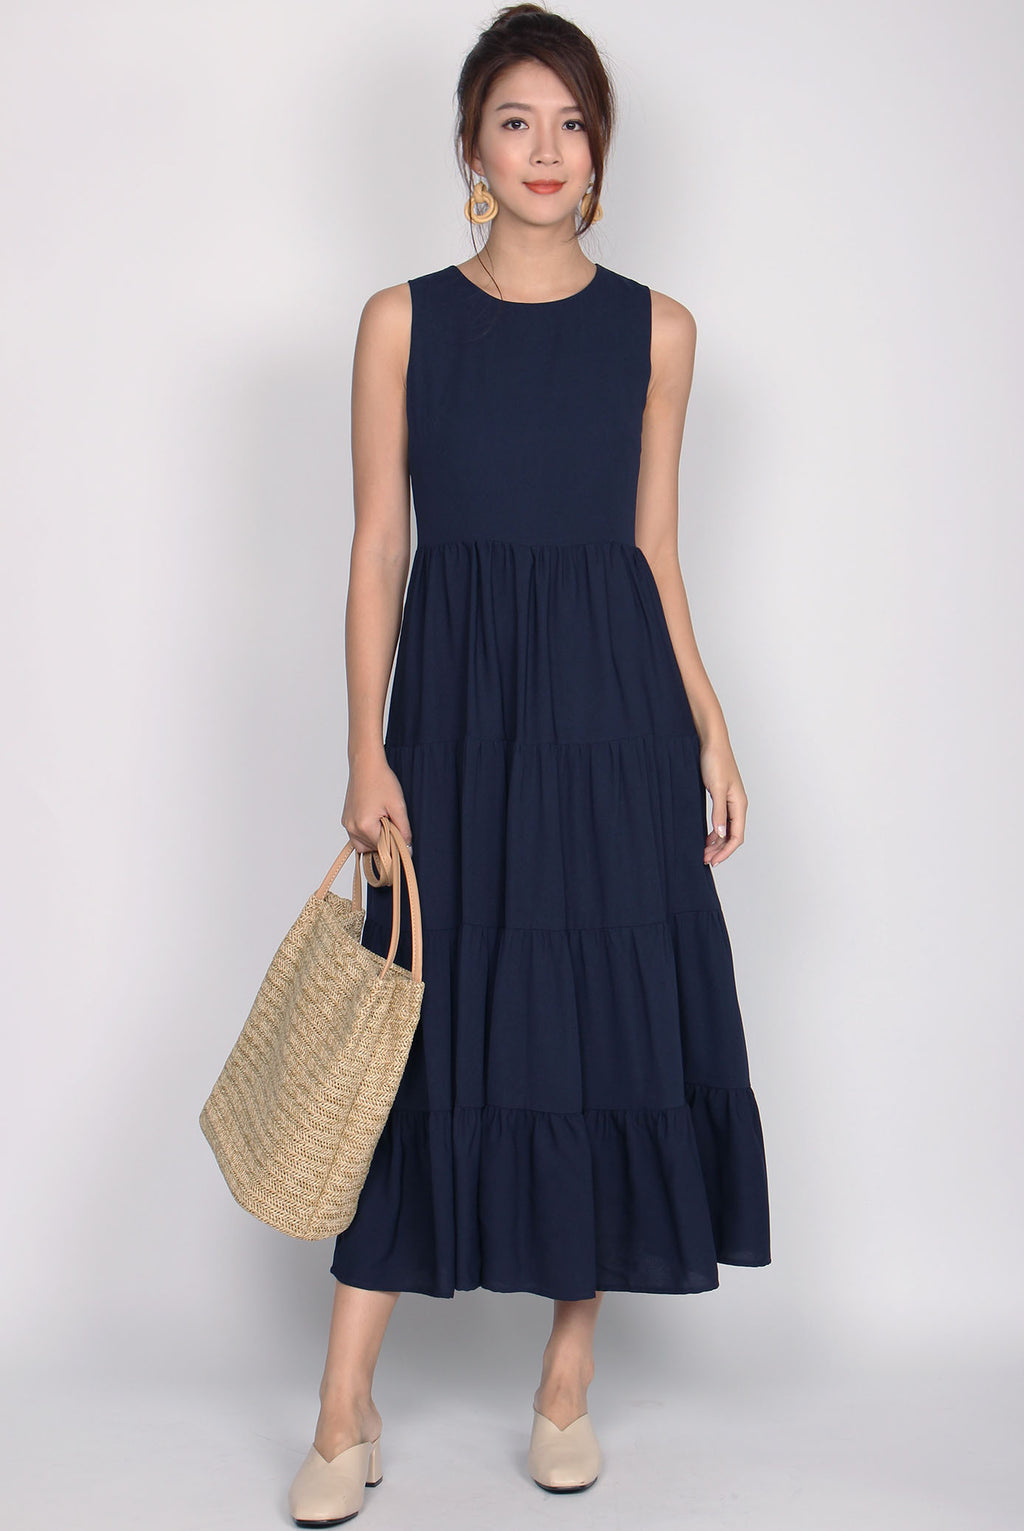 Fidela Tiered Maxi Dress In Navy Blue